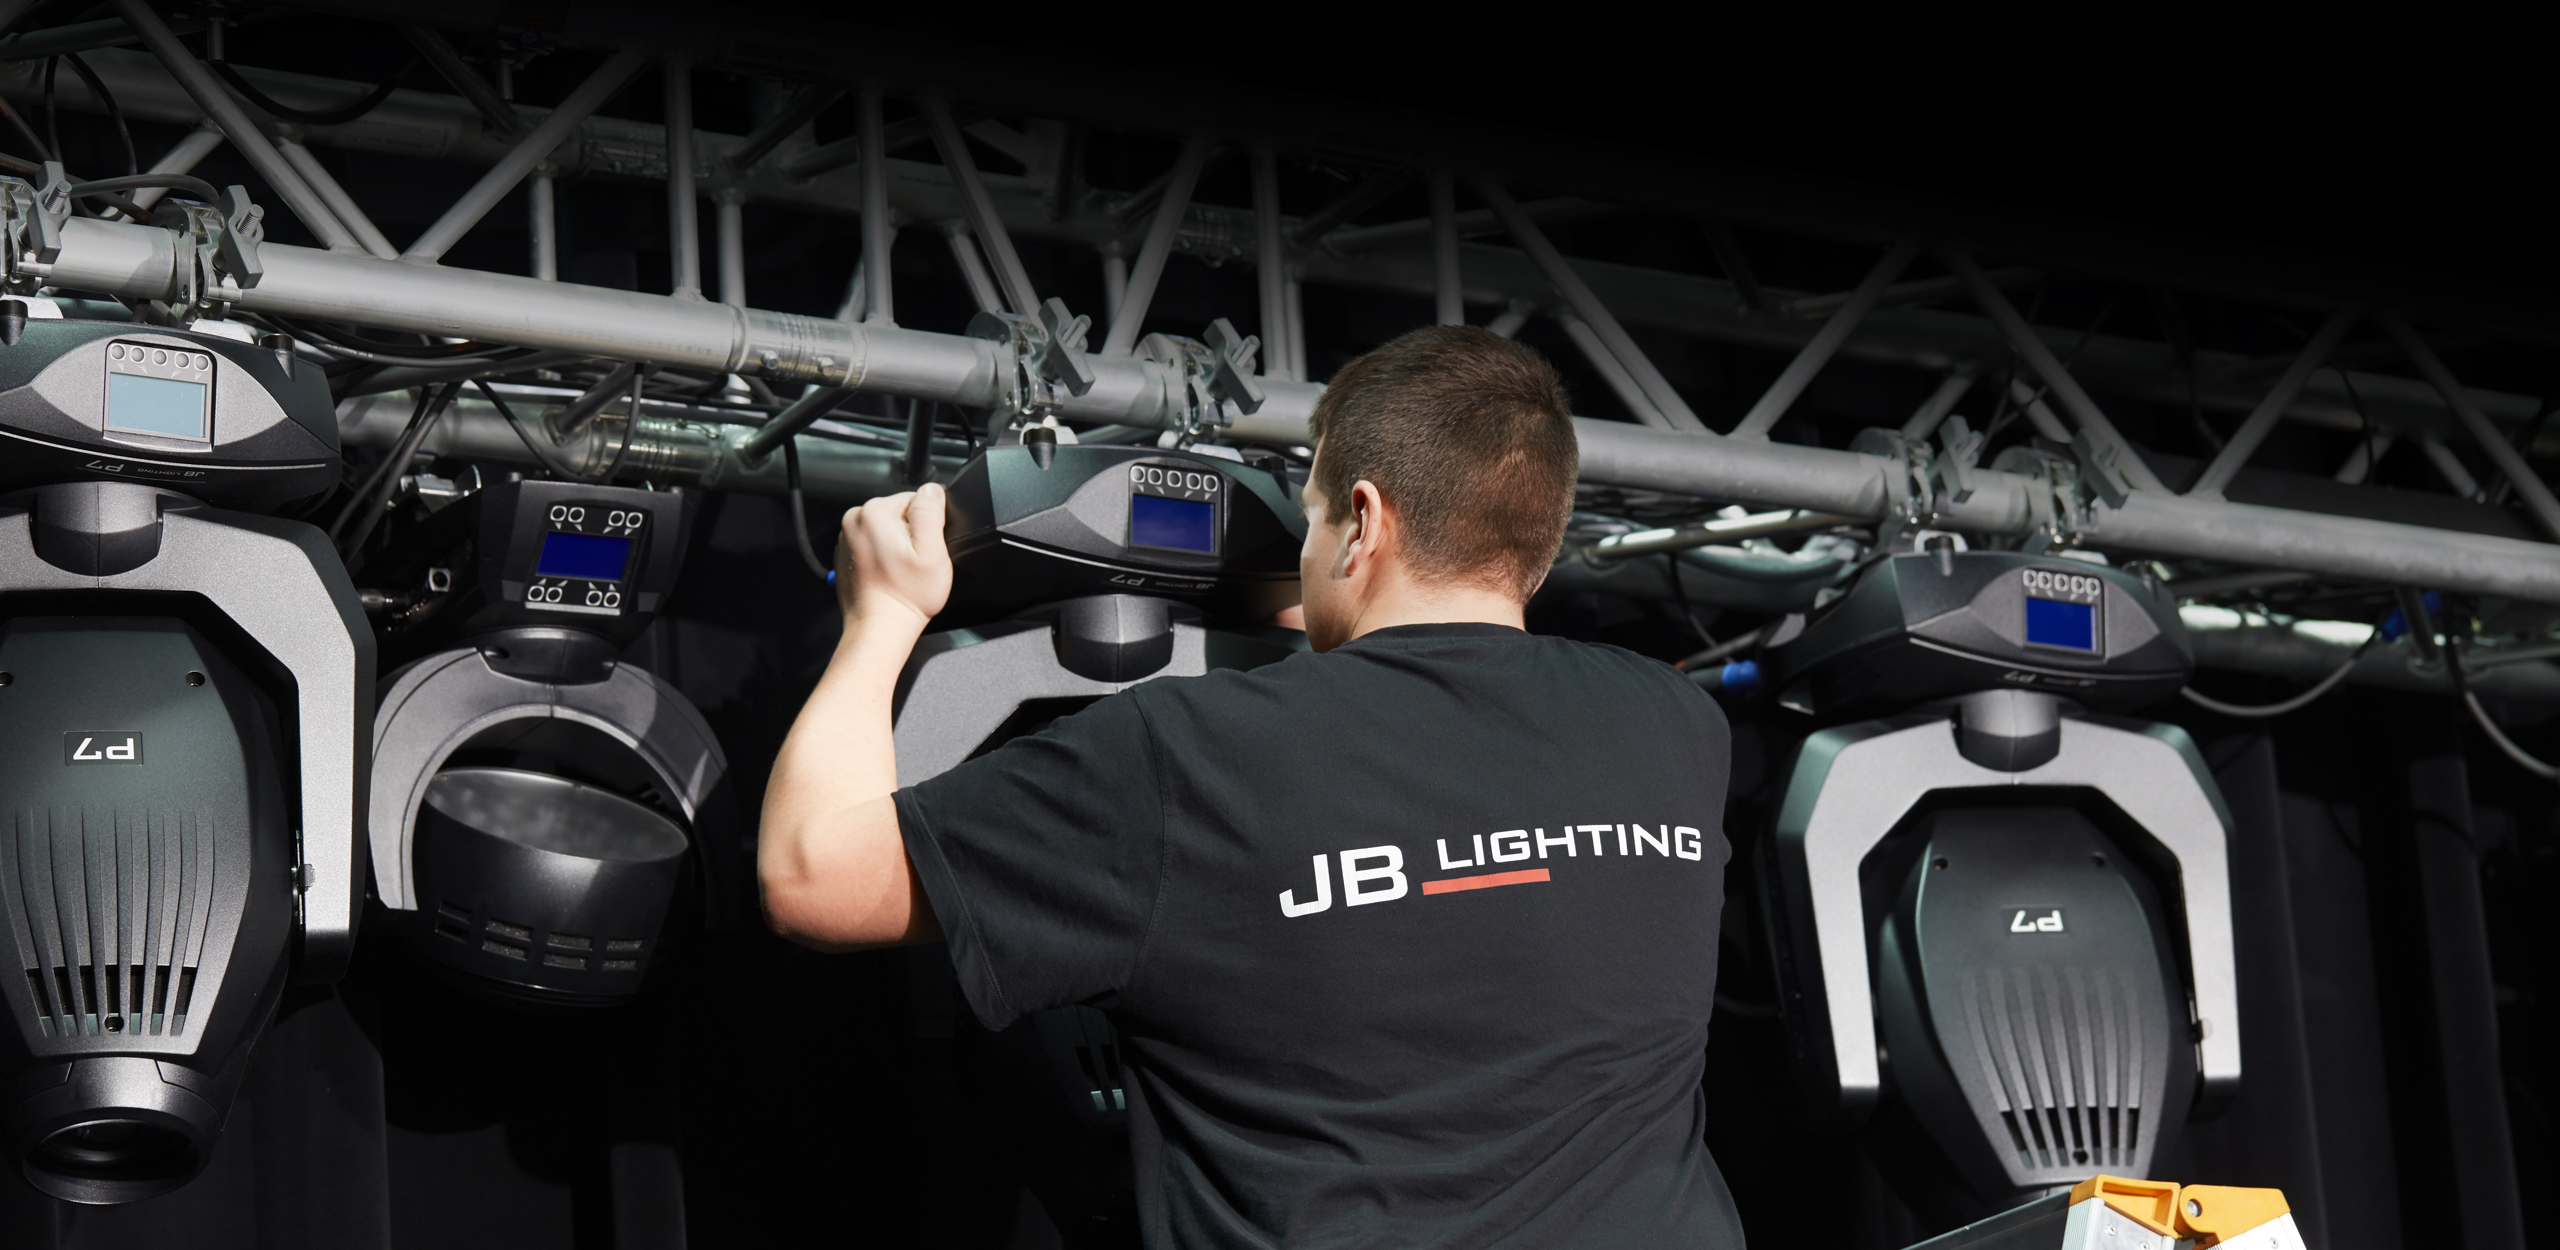 Jb Lighting T-shirt Jb Lighting